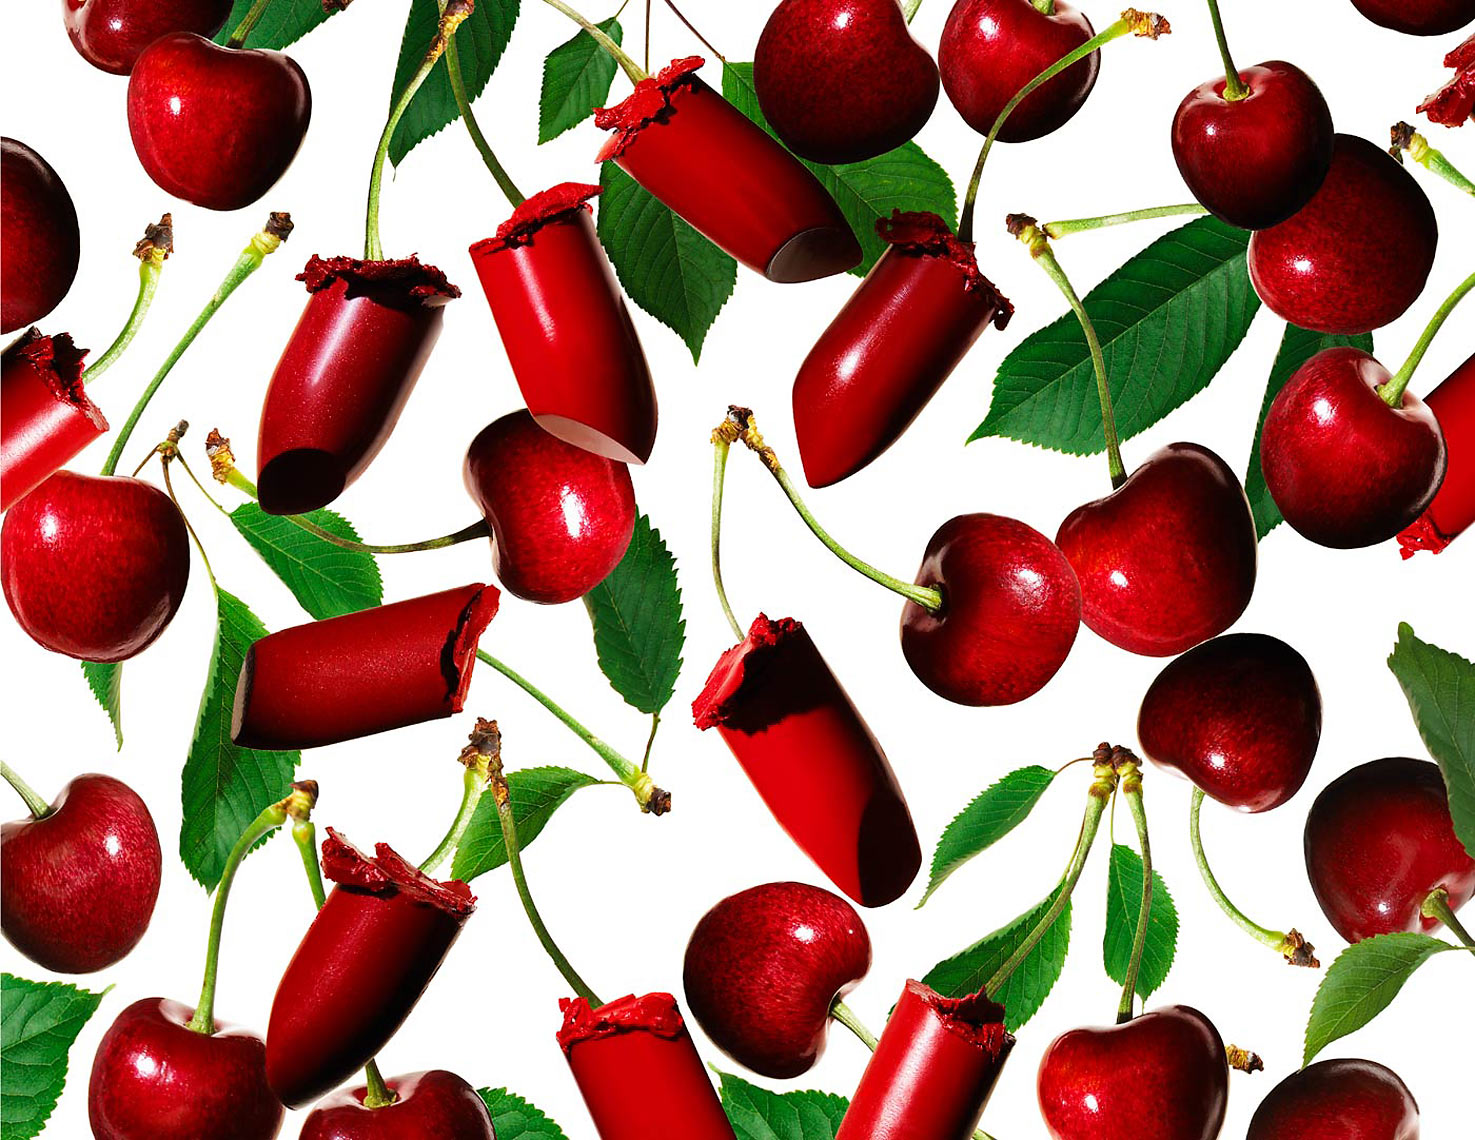 Cherries_Lips_APF.jpg